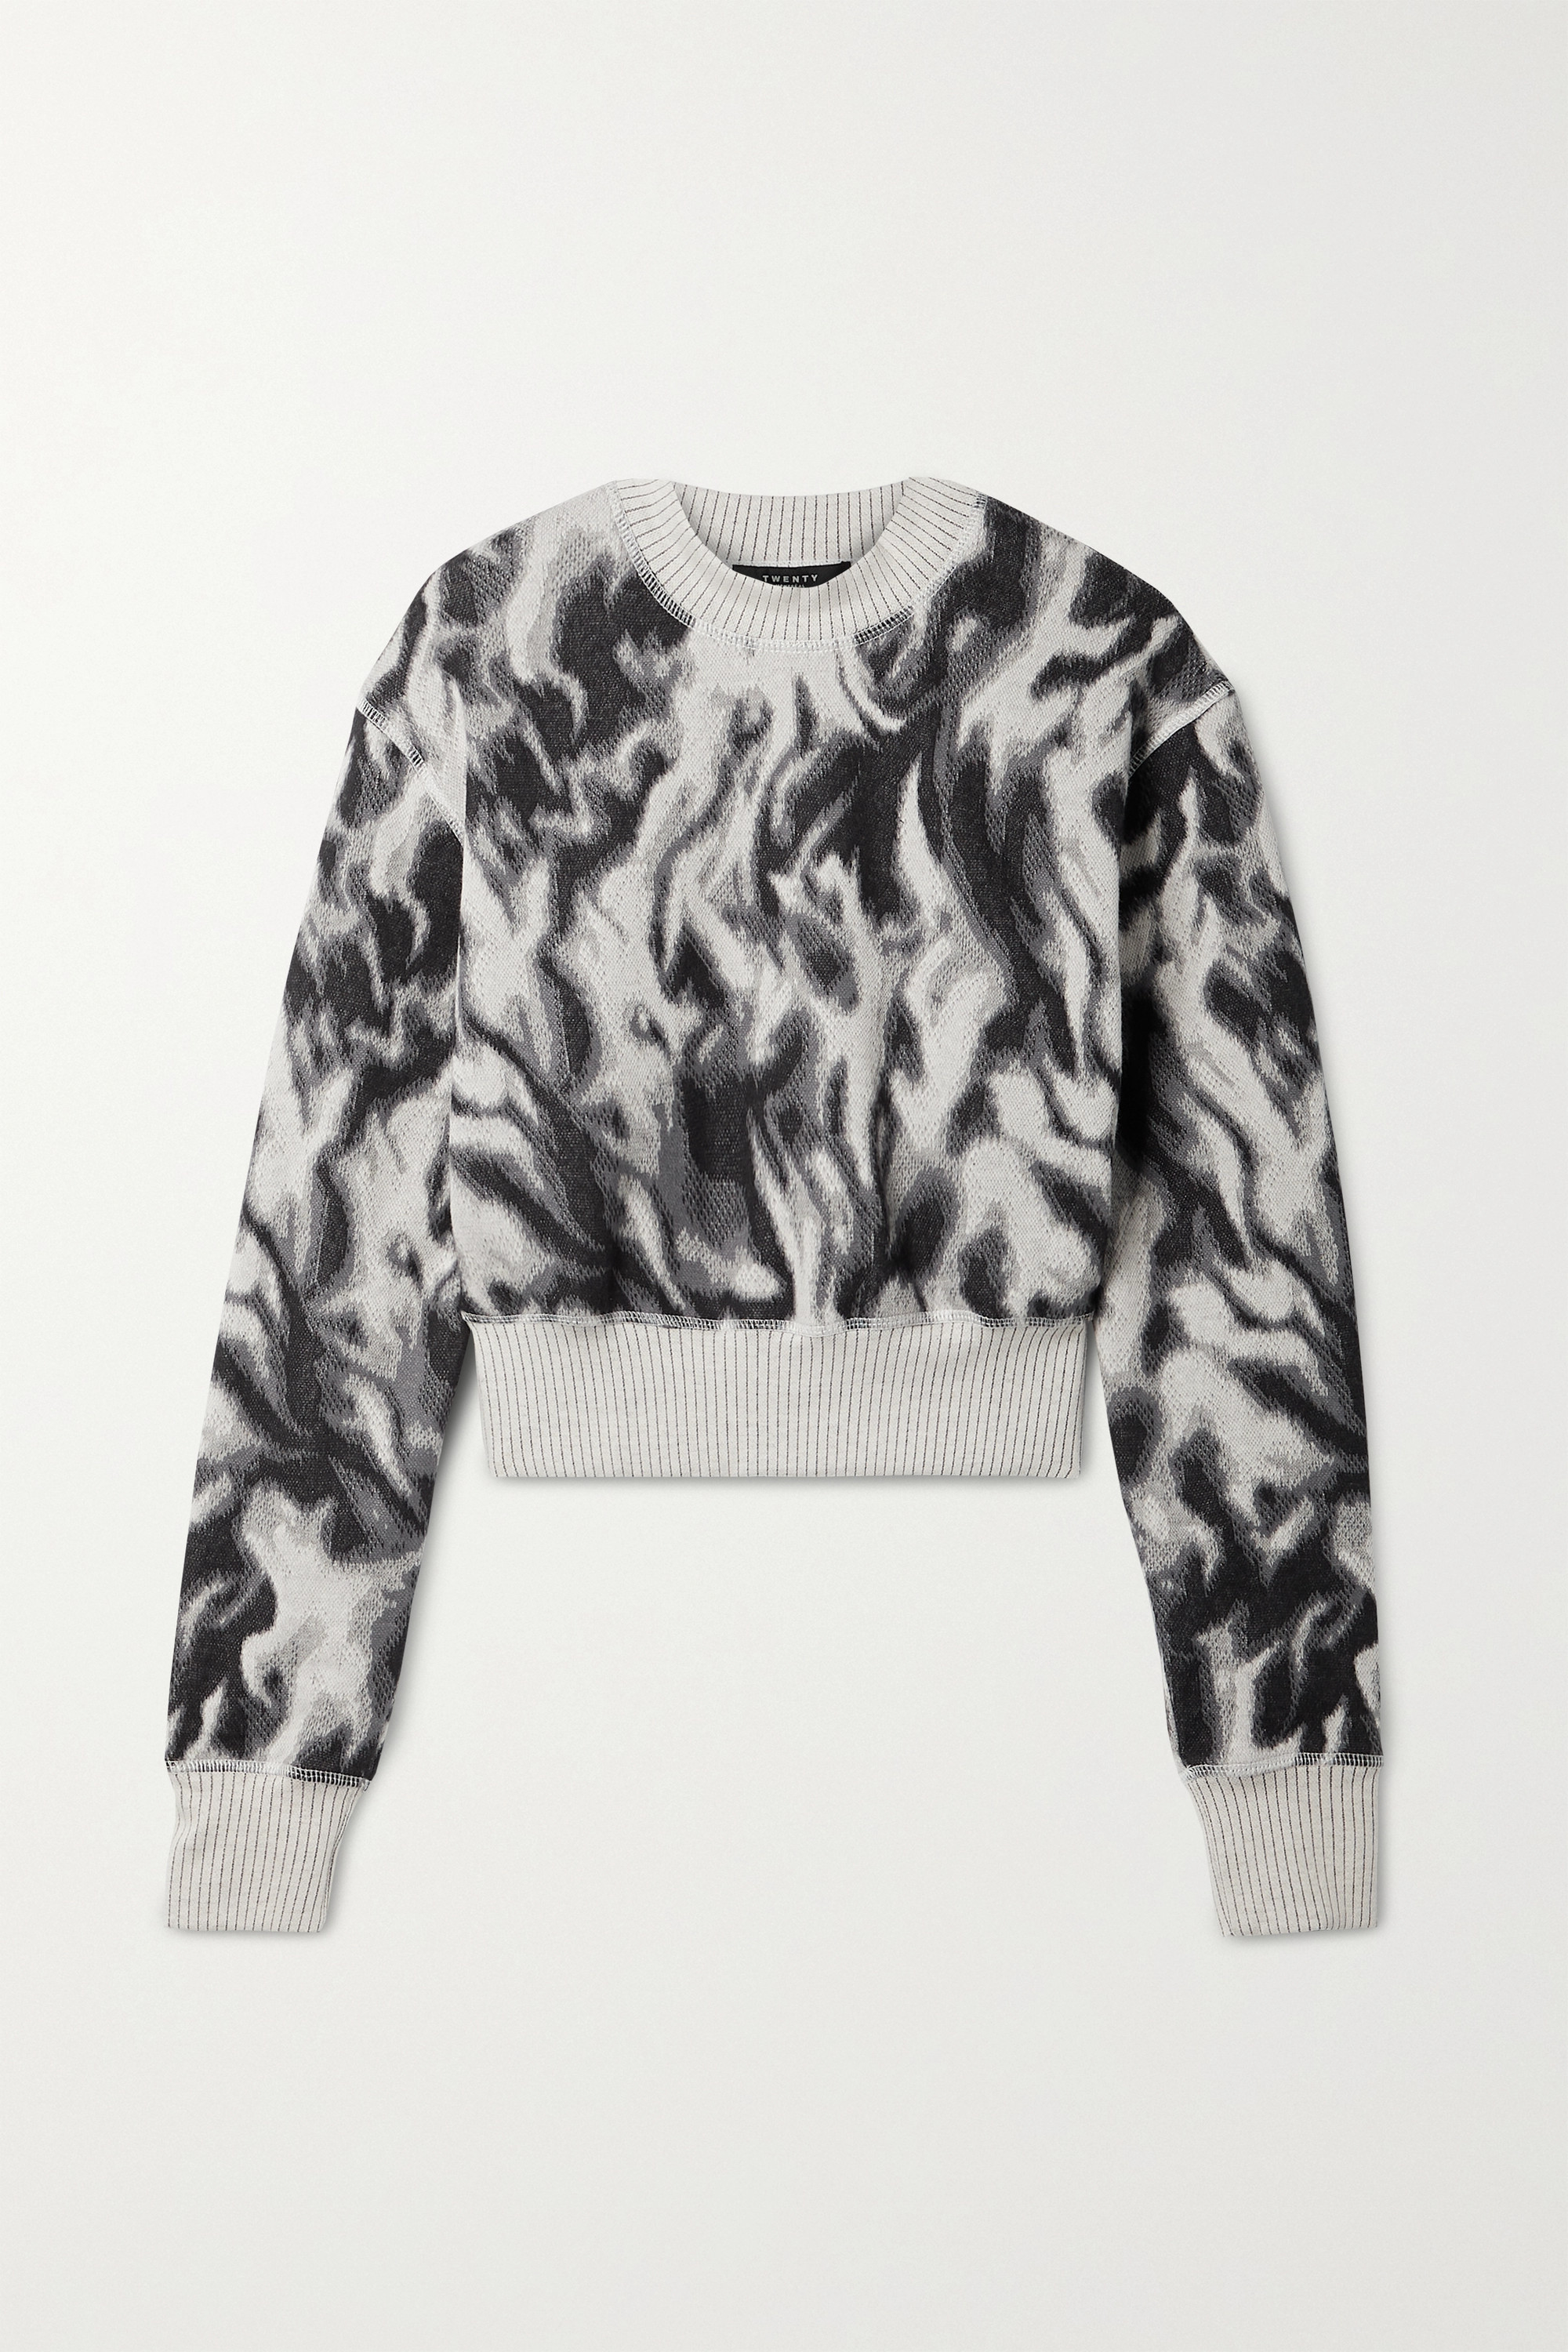 TWENTY MONTRÉAL Flames Hyper Reality cropped jacquard-knit cotton-blend sweater